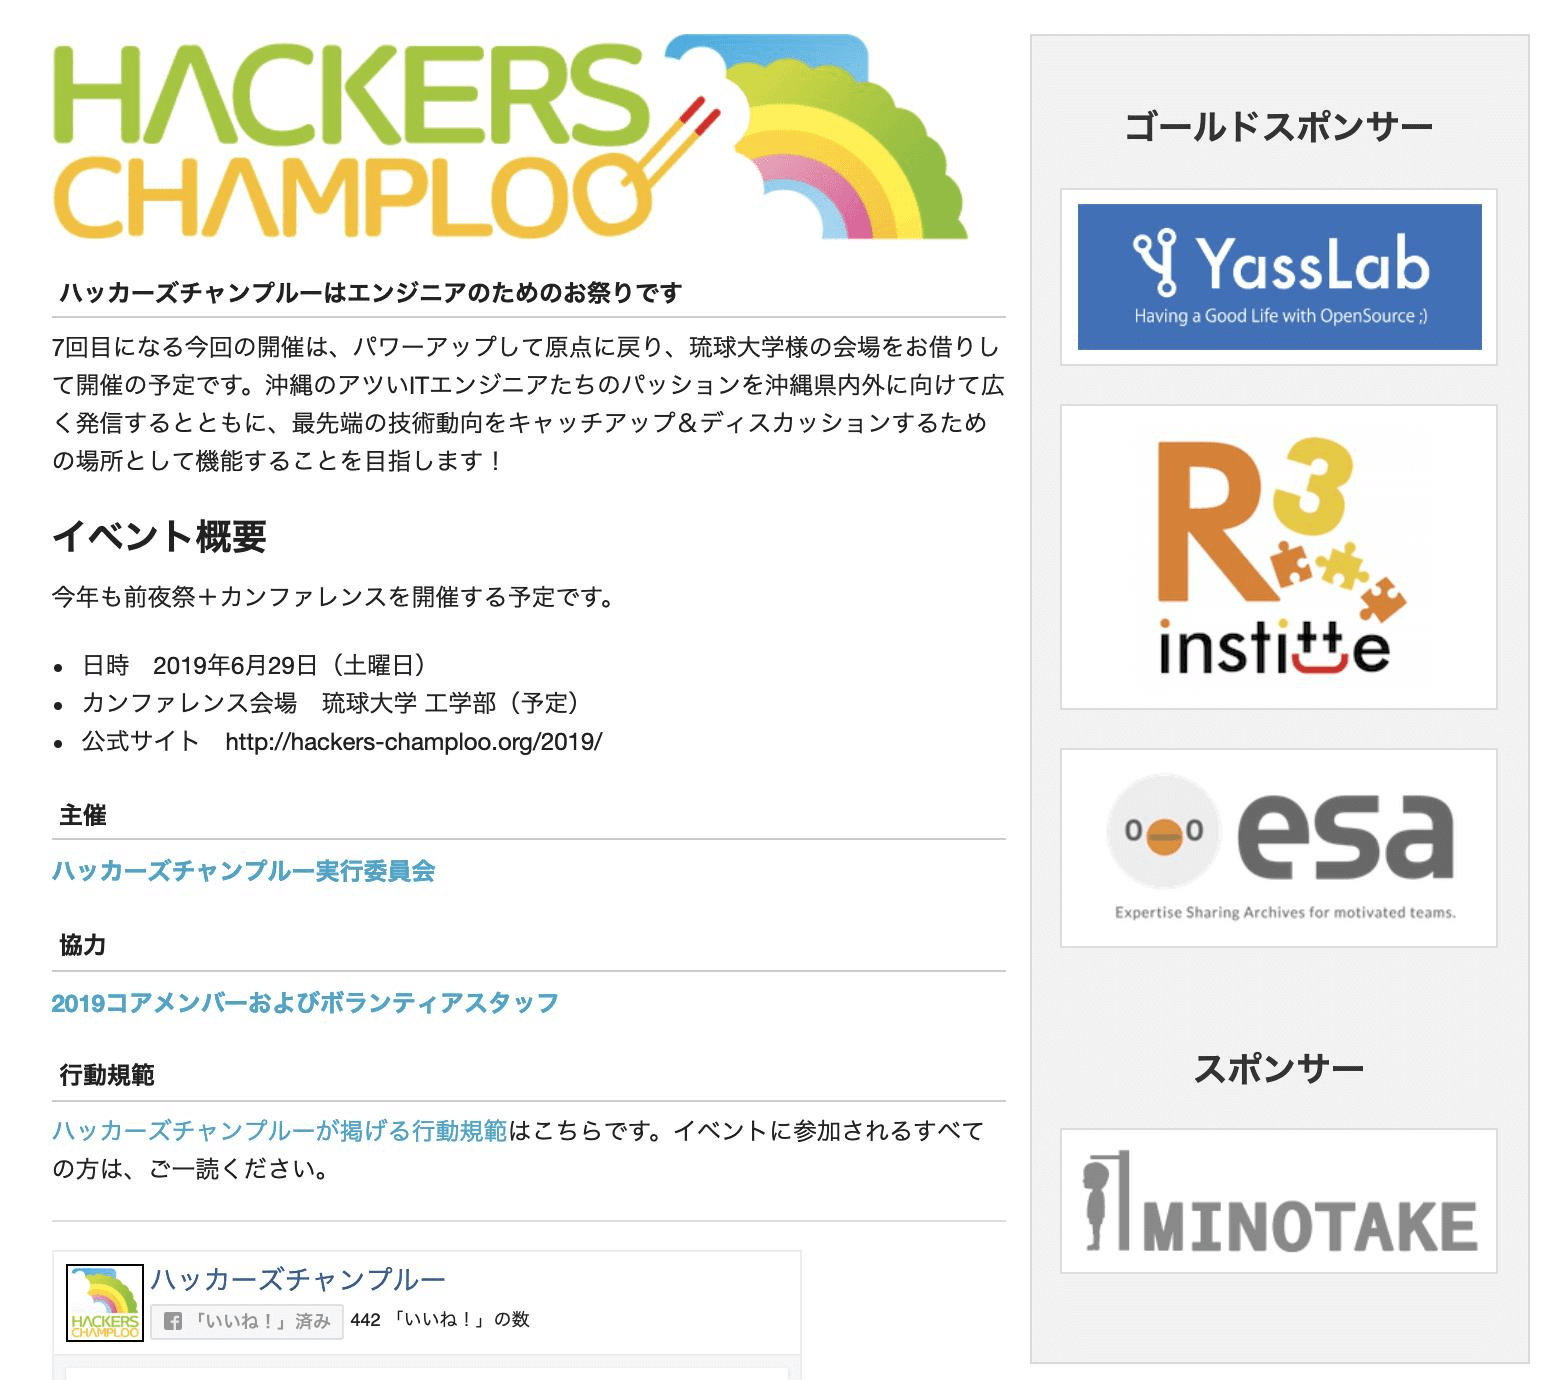 Hackers Champloo 2019 Gold Sponsor